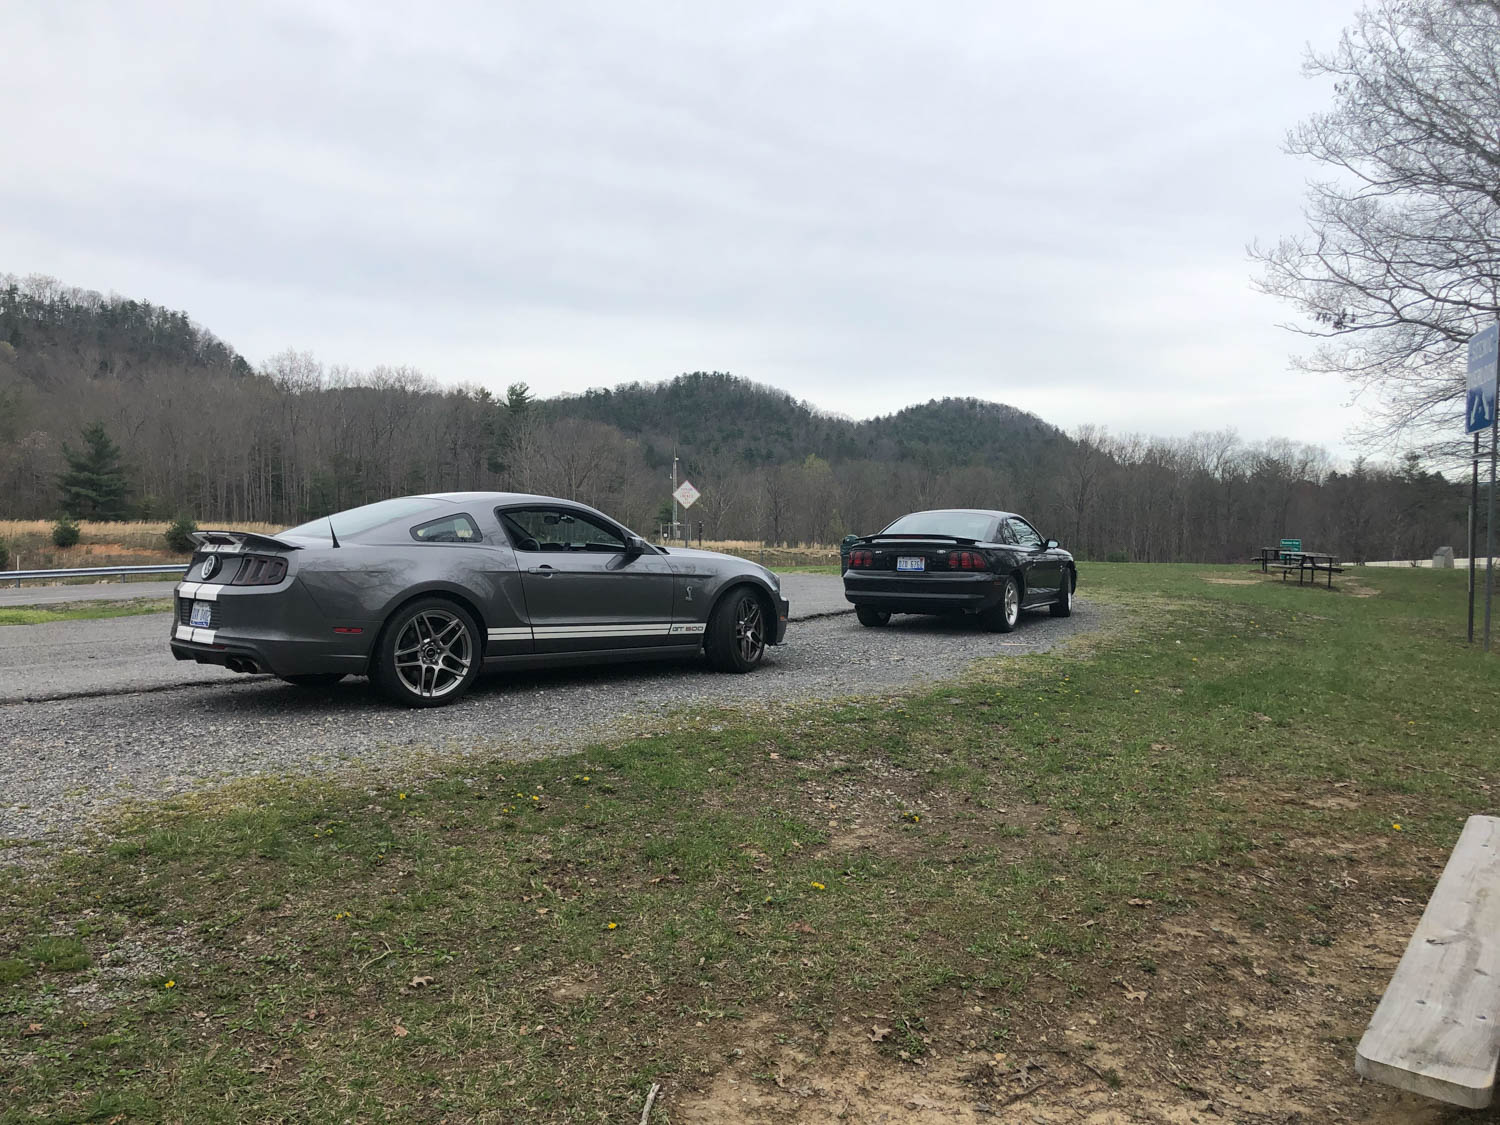 1994 Ford Mustang Cobra and 2013 Shelby GT500